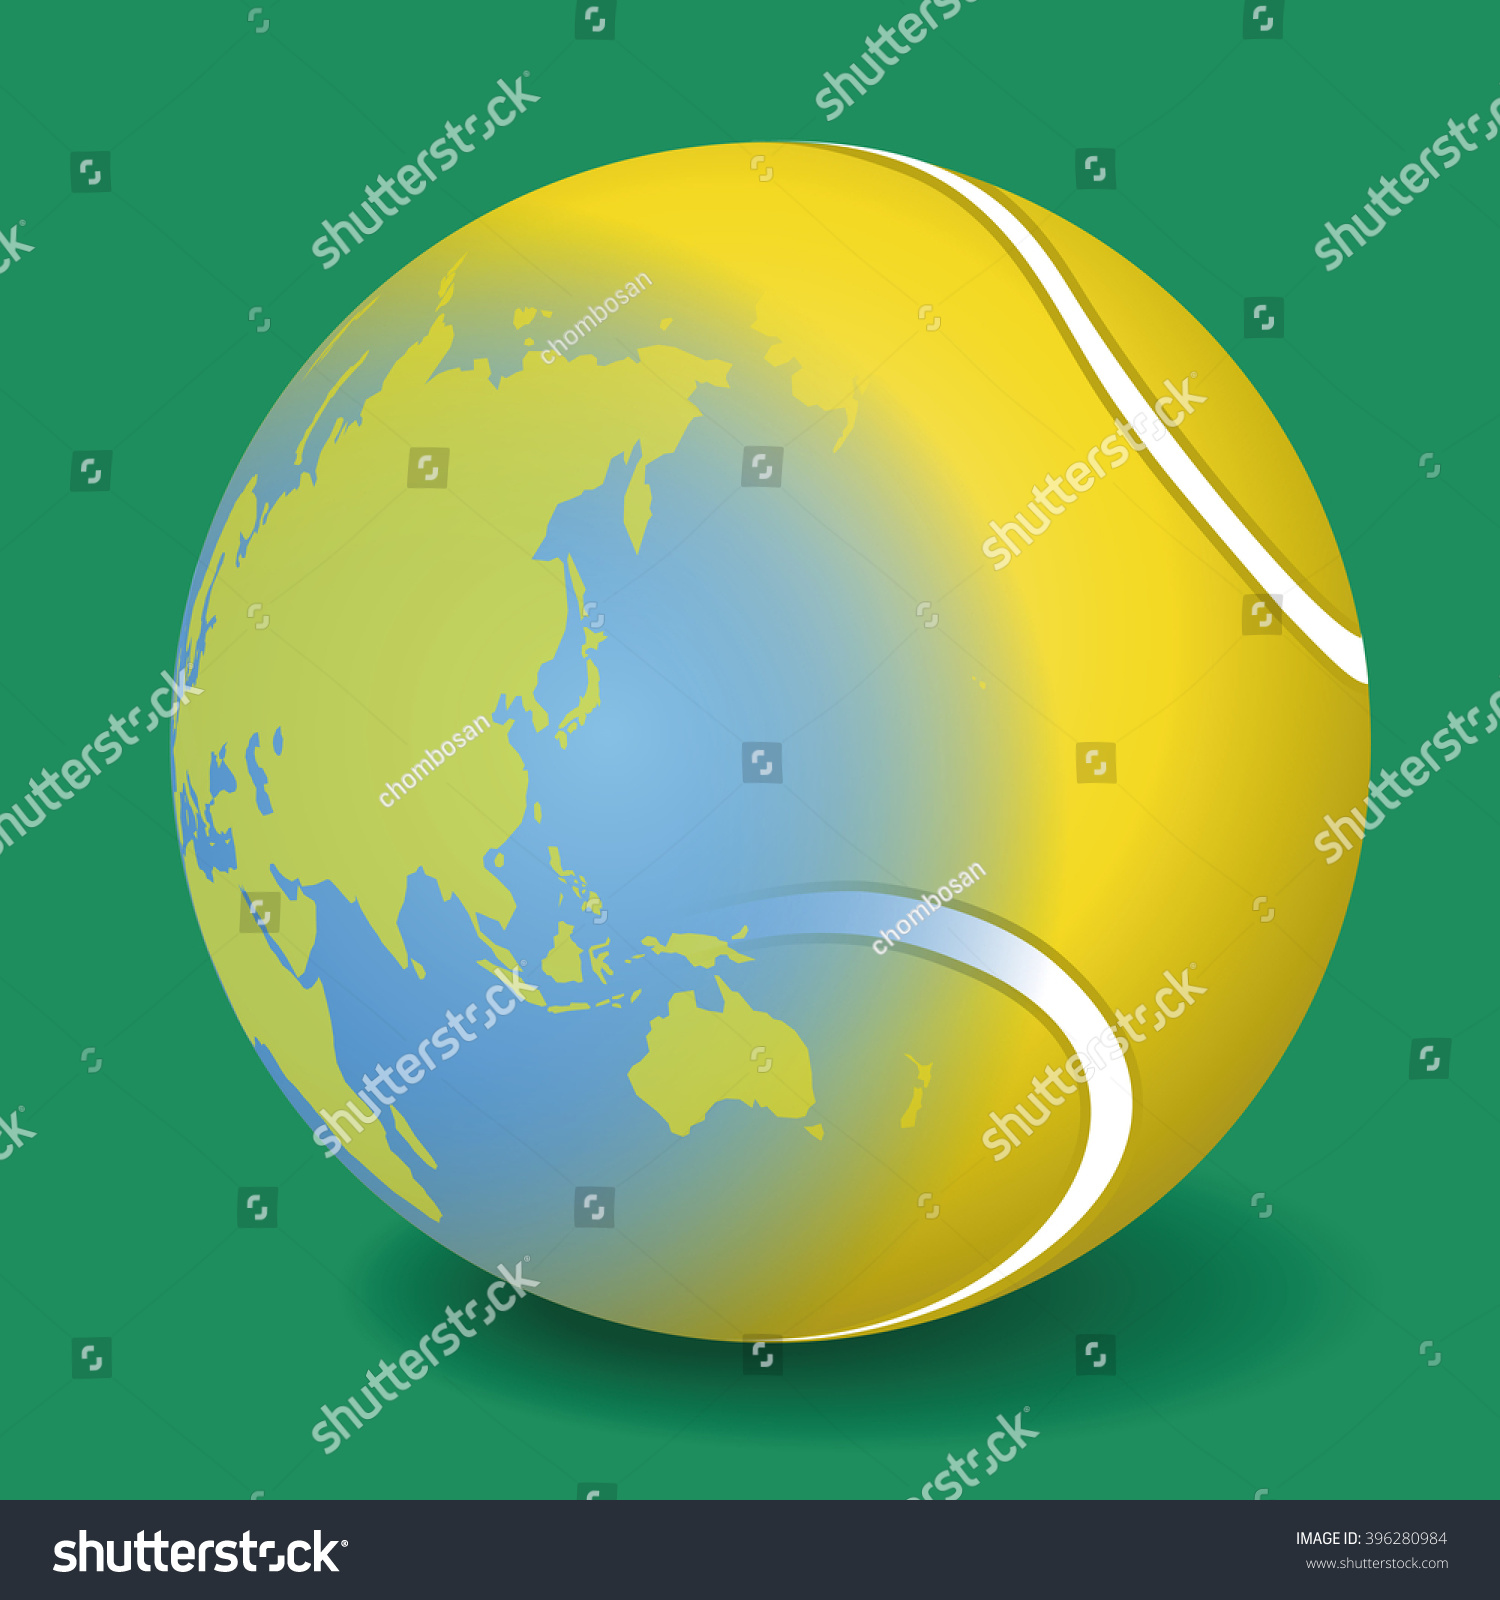 Tennis ball world map vector illustration stock vector 396280984 tennis ball and world map vector illustration gumiabroncs Images